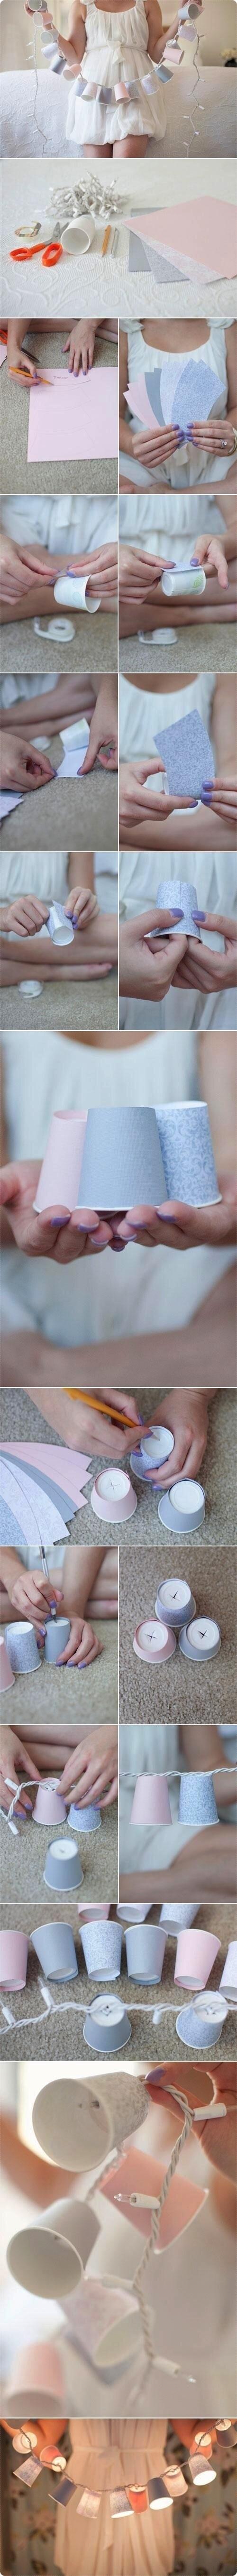 Turn Dixie cups into a light-up garland.